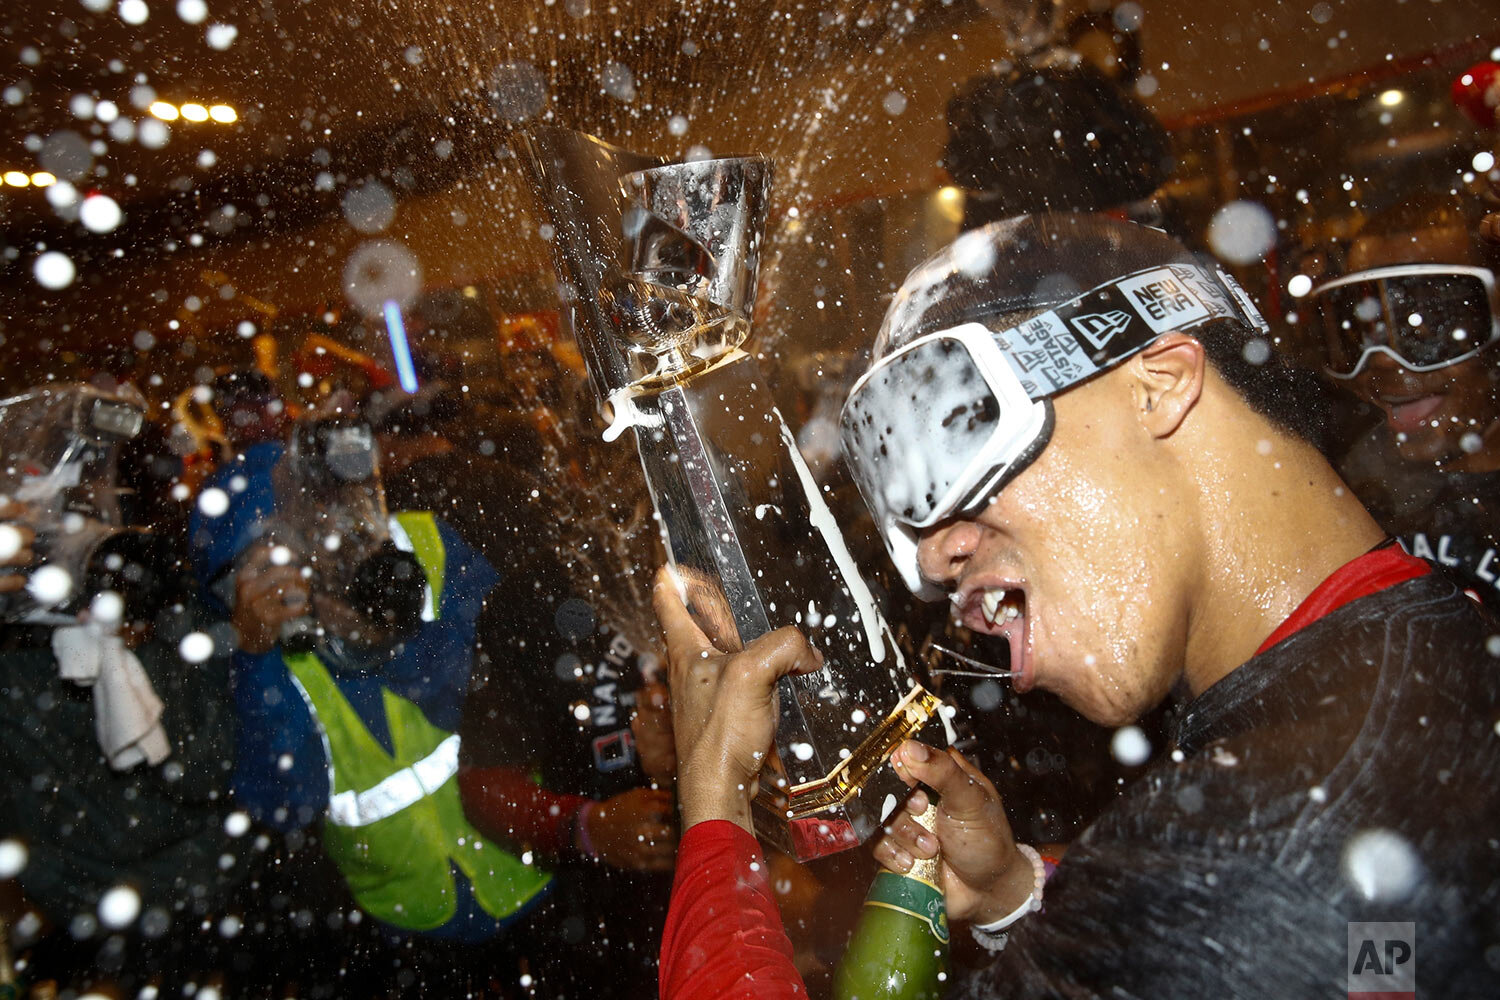 Washington Nationals' Juan Soto celebrates after Game 4 of the baseball National League Championship Series against the St. Louis Cardinals Wednesday, Oct. 16, 2019, in Washington. The Nationals won 7-4 to win the series 4-0. (AP Photo/Patrick Semansky)